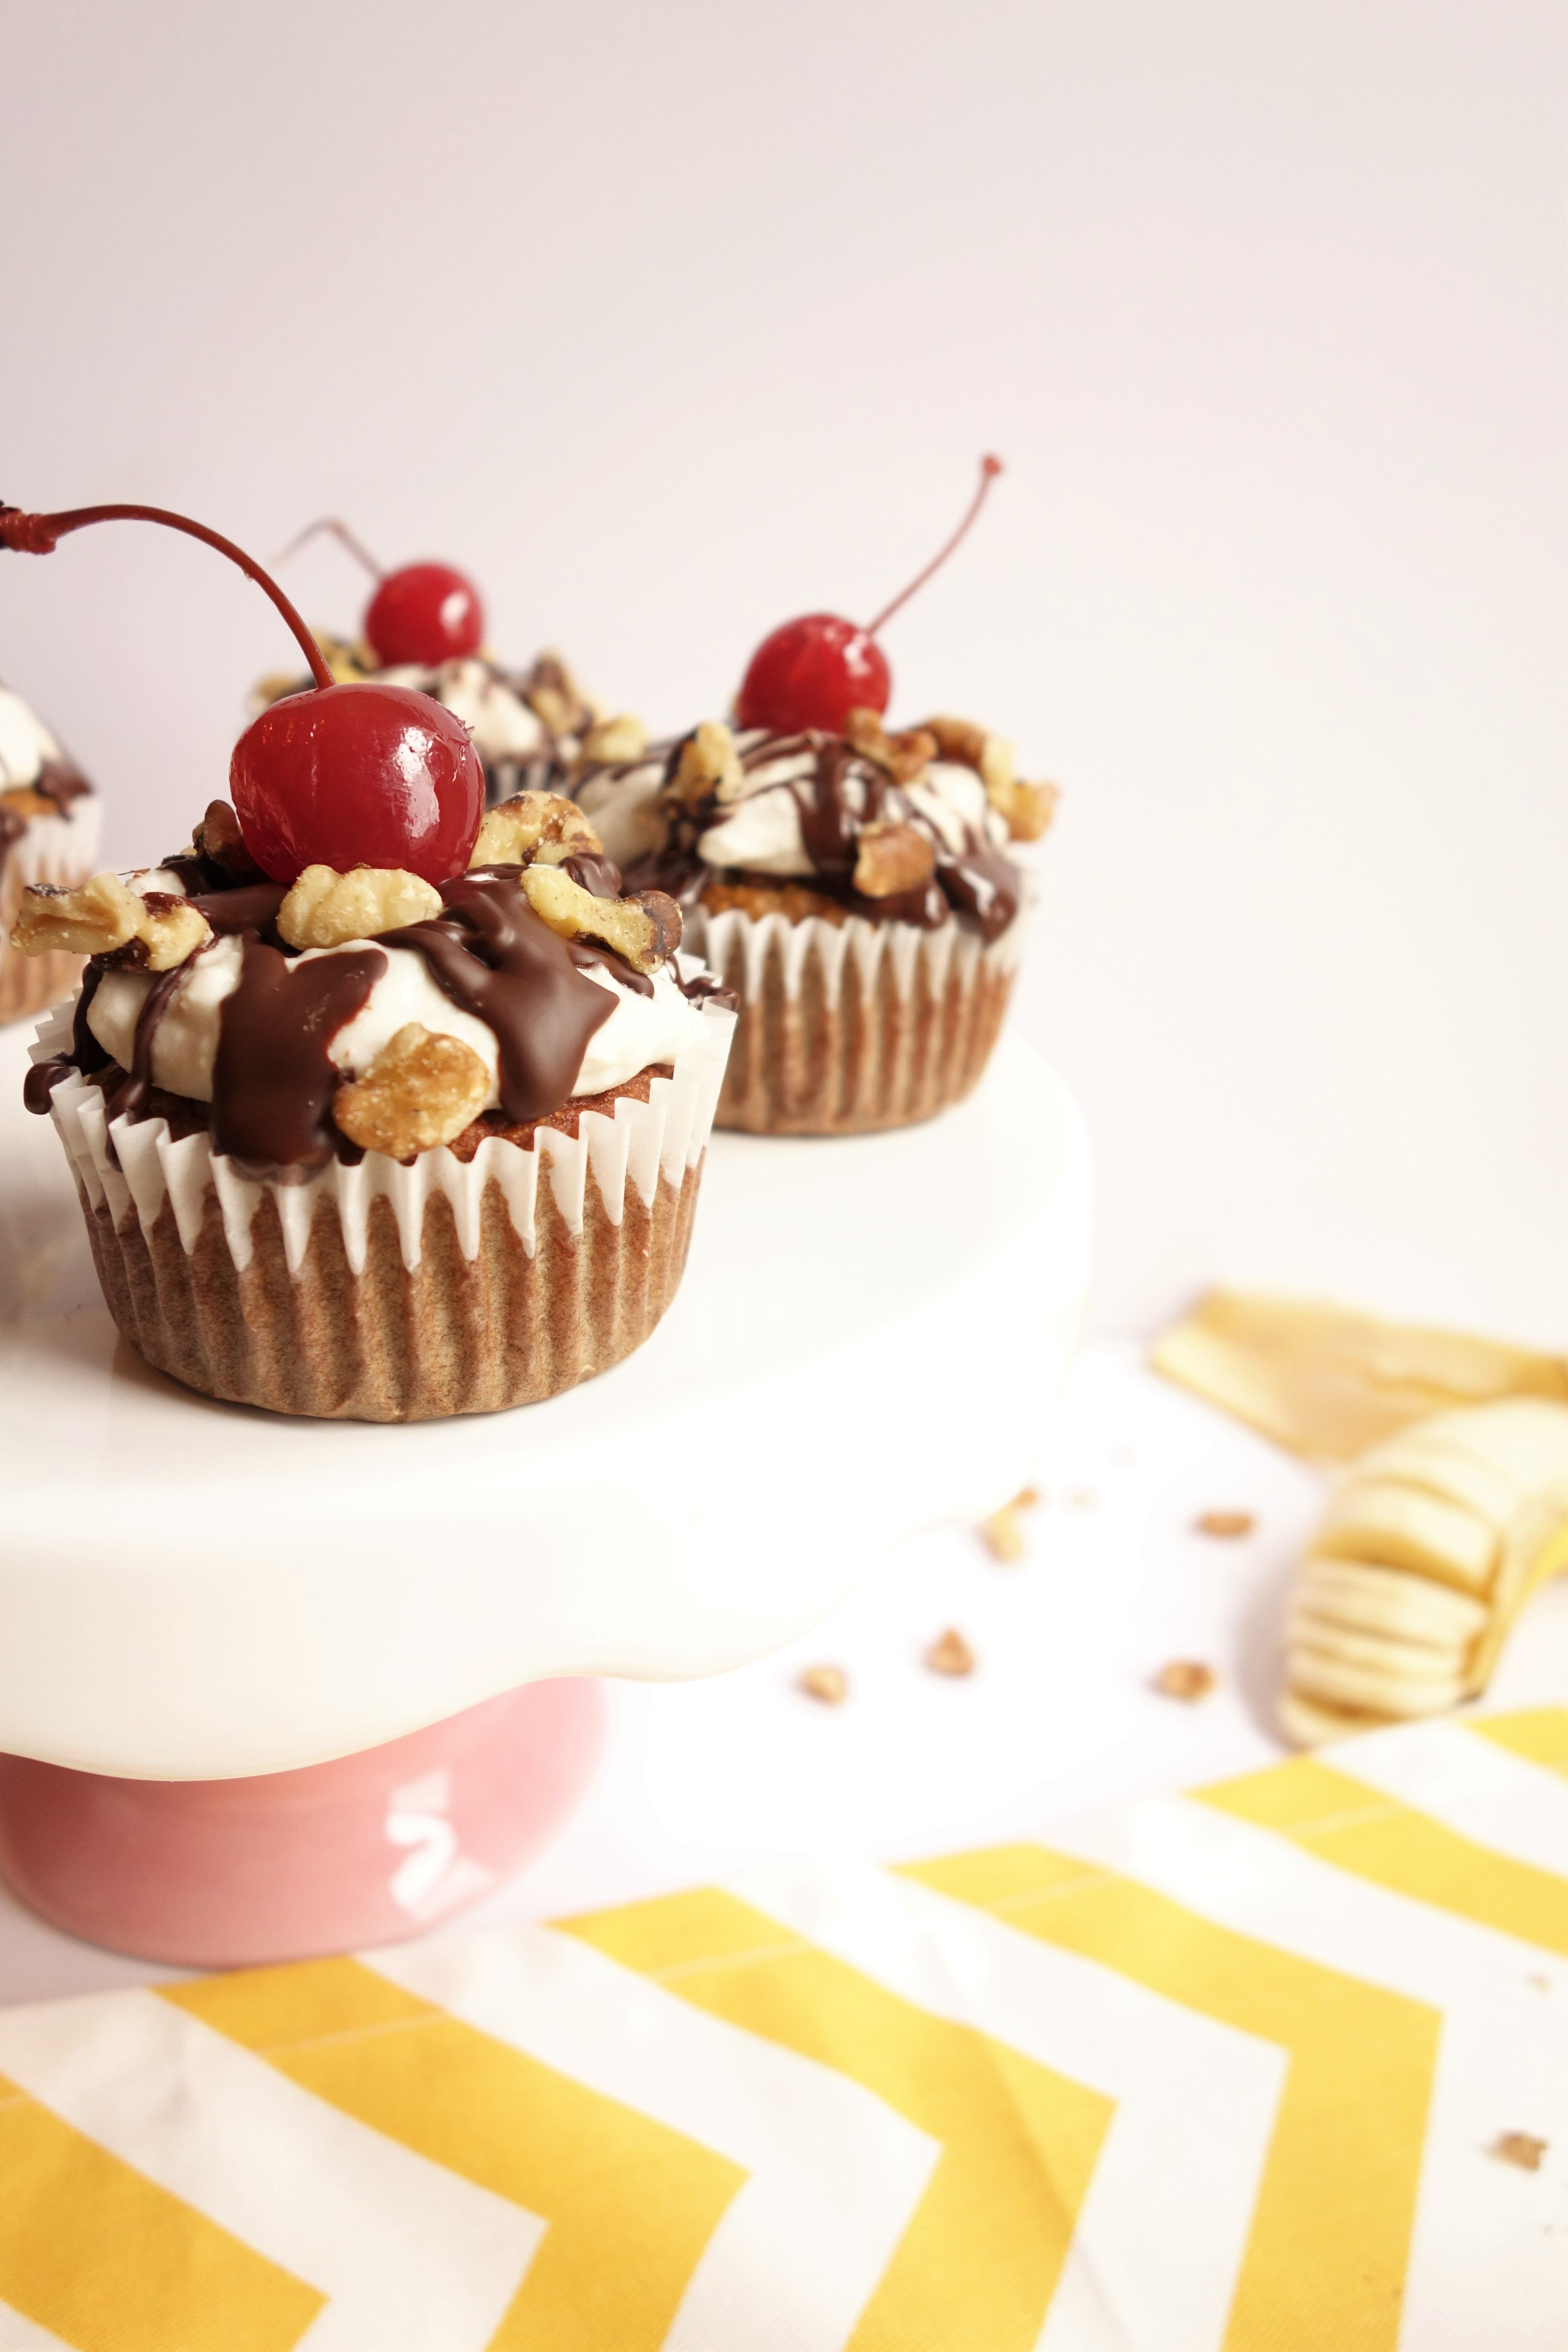 Paleofriendly banana split cupcakes made with simple